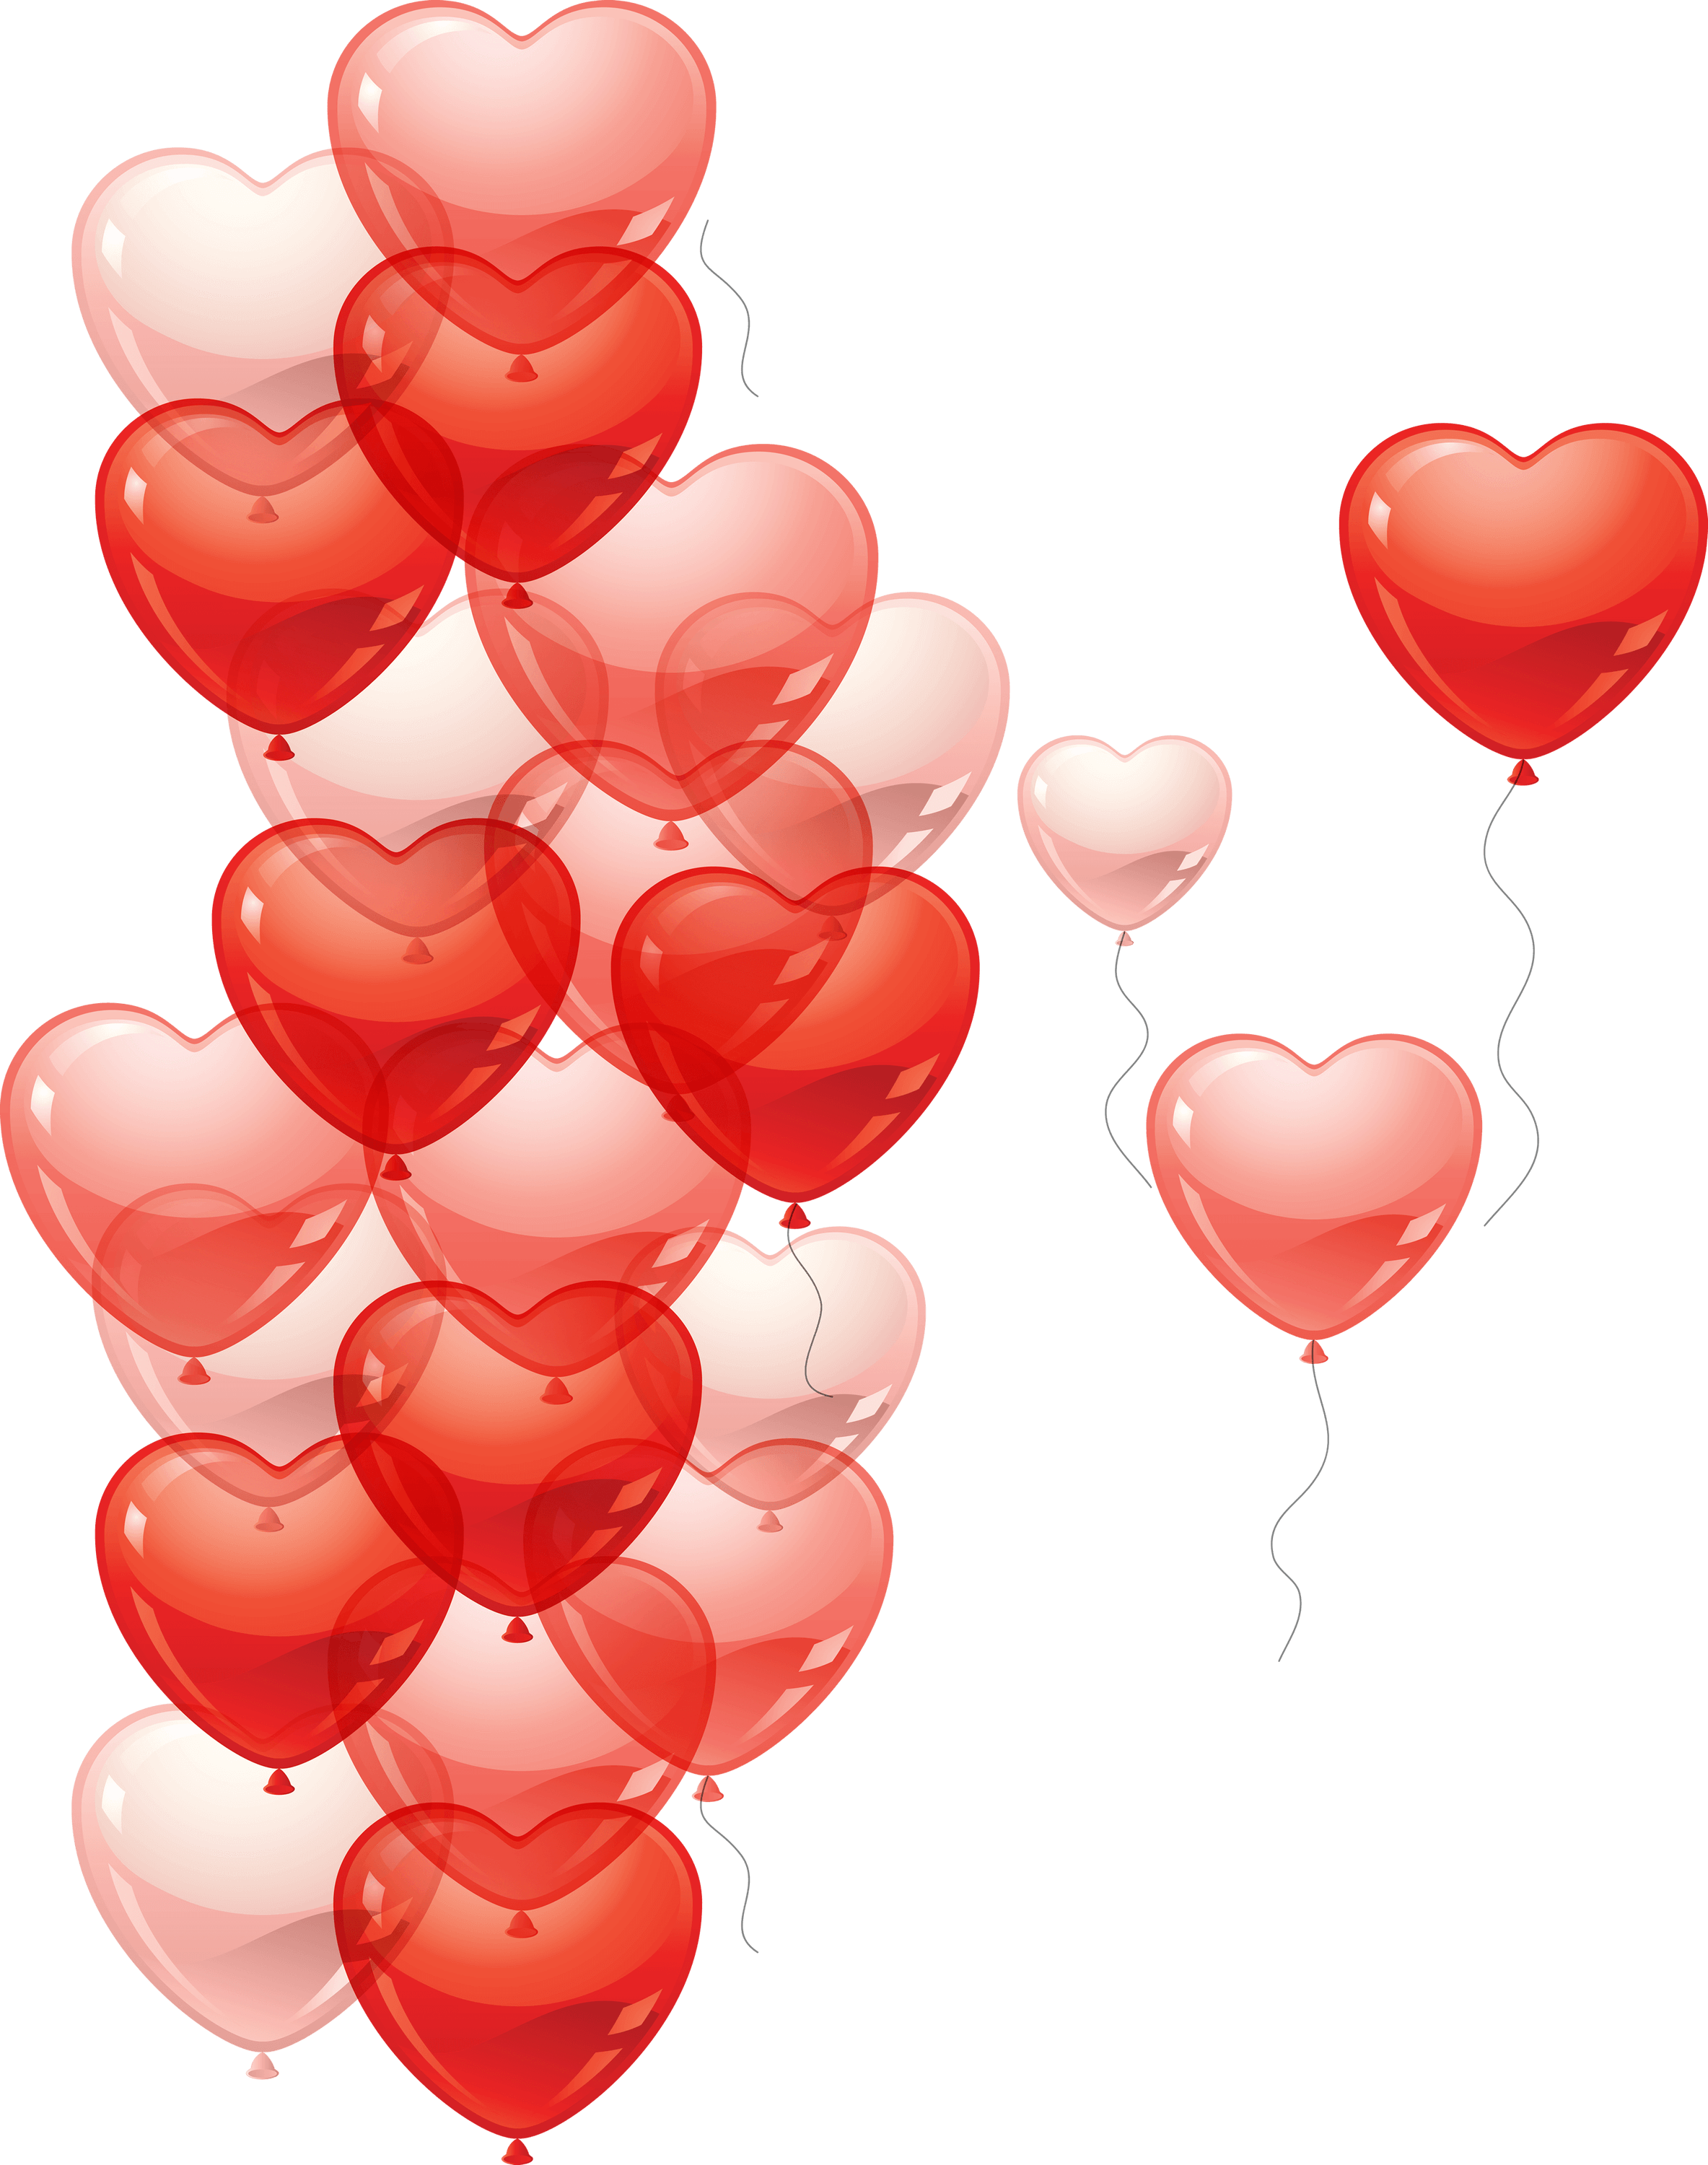 Balloons Hearts Png Transparent